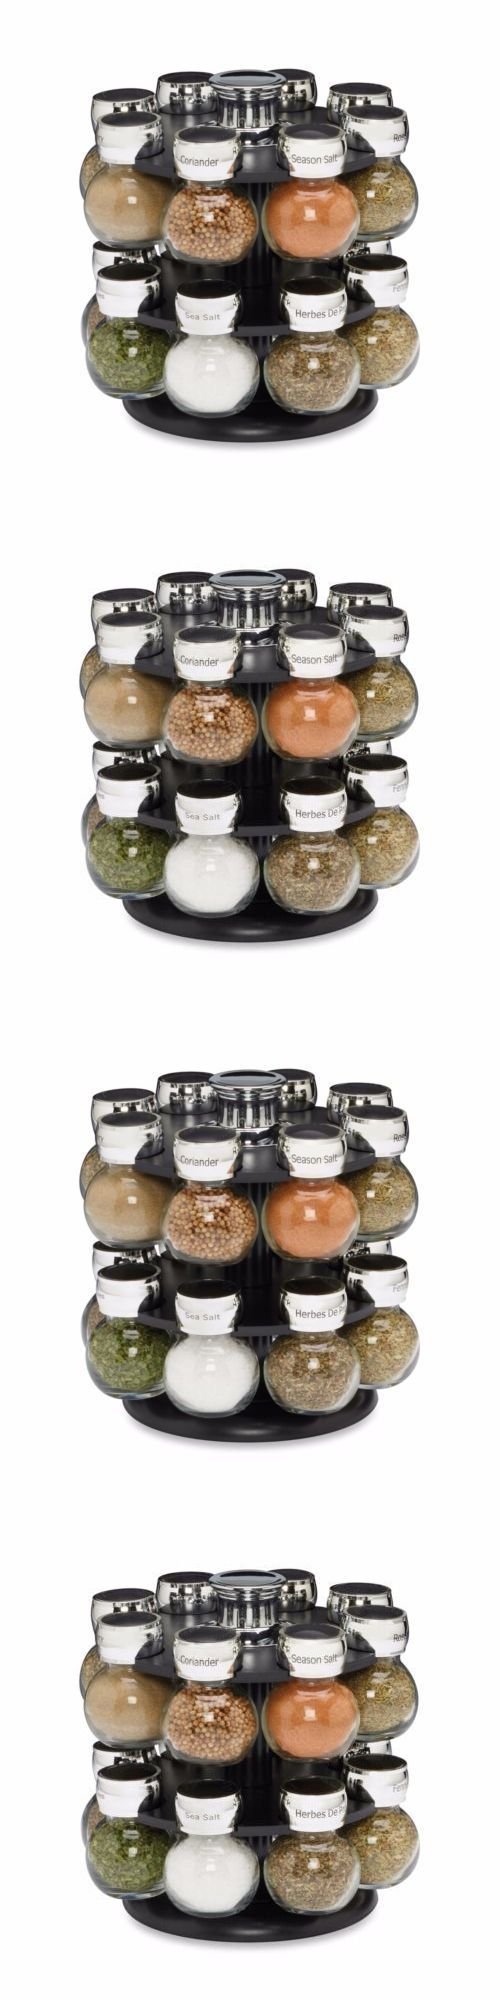 Spice Jars and Racks 20646: Counter Top 16 Jar Ellington Rotating Spice Rack Five Years Free Spice Refills -> BUY IT NOW ONLY: $42.99 on eBay!